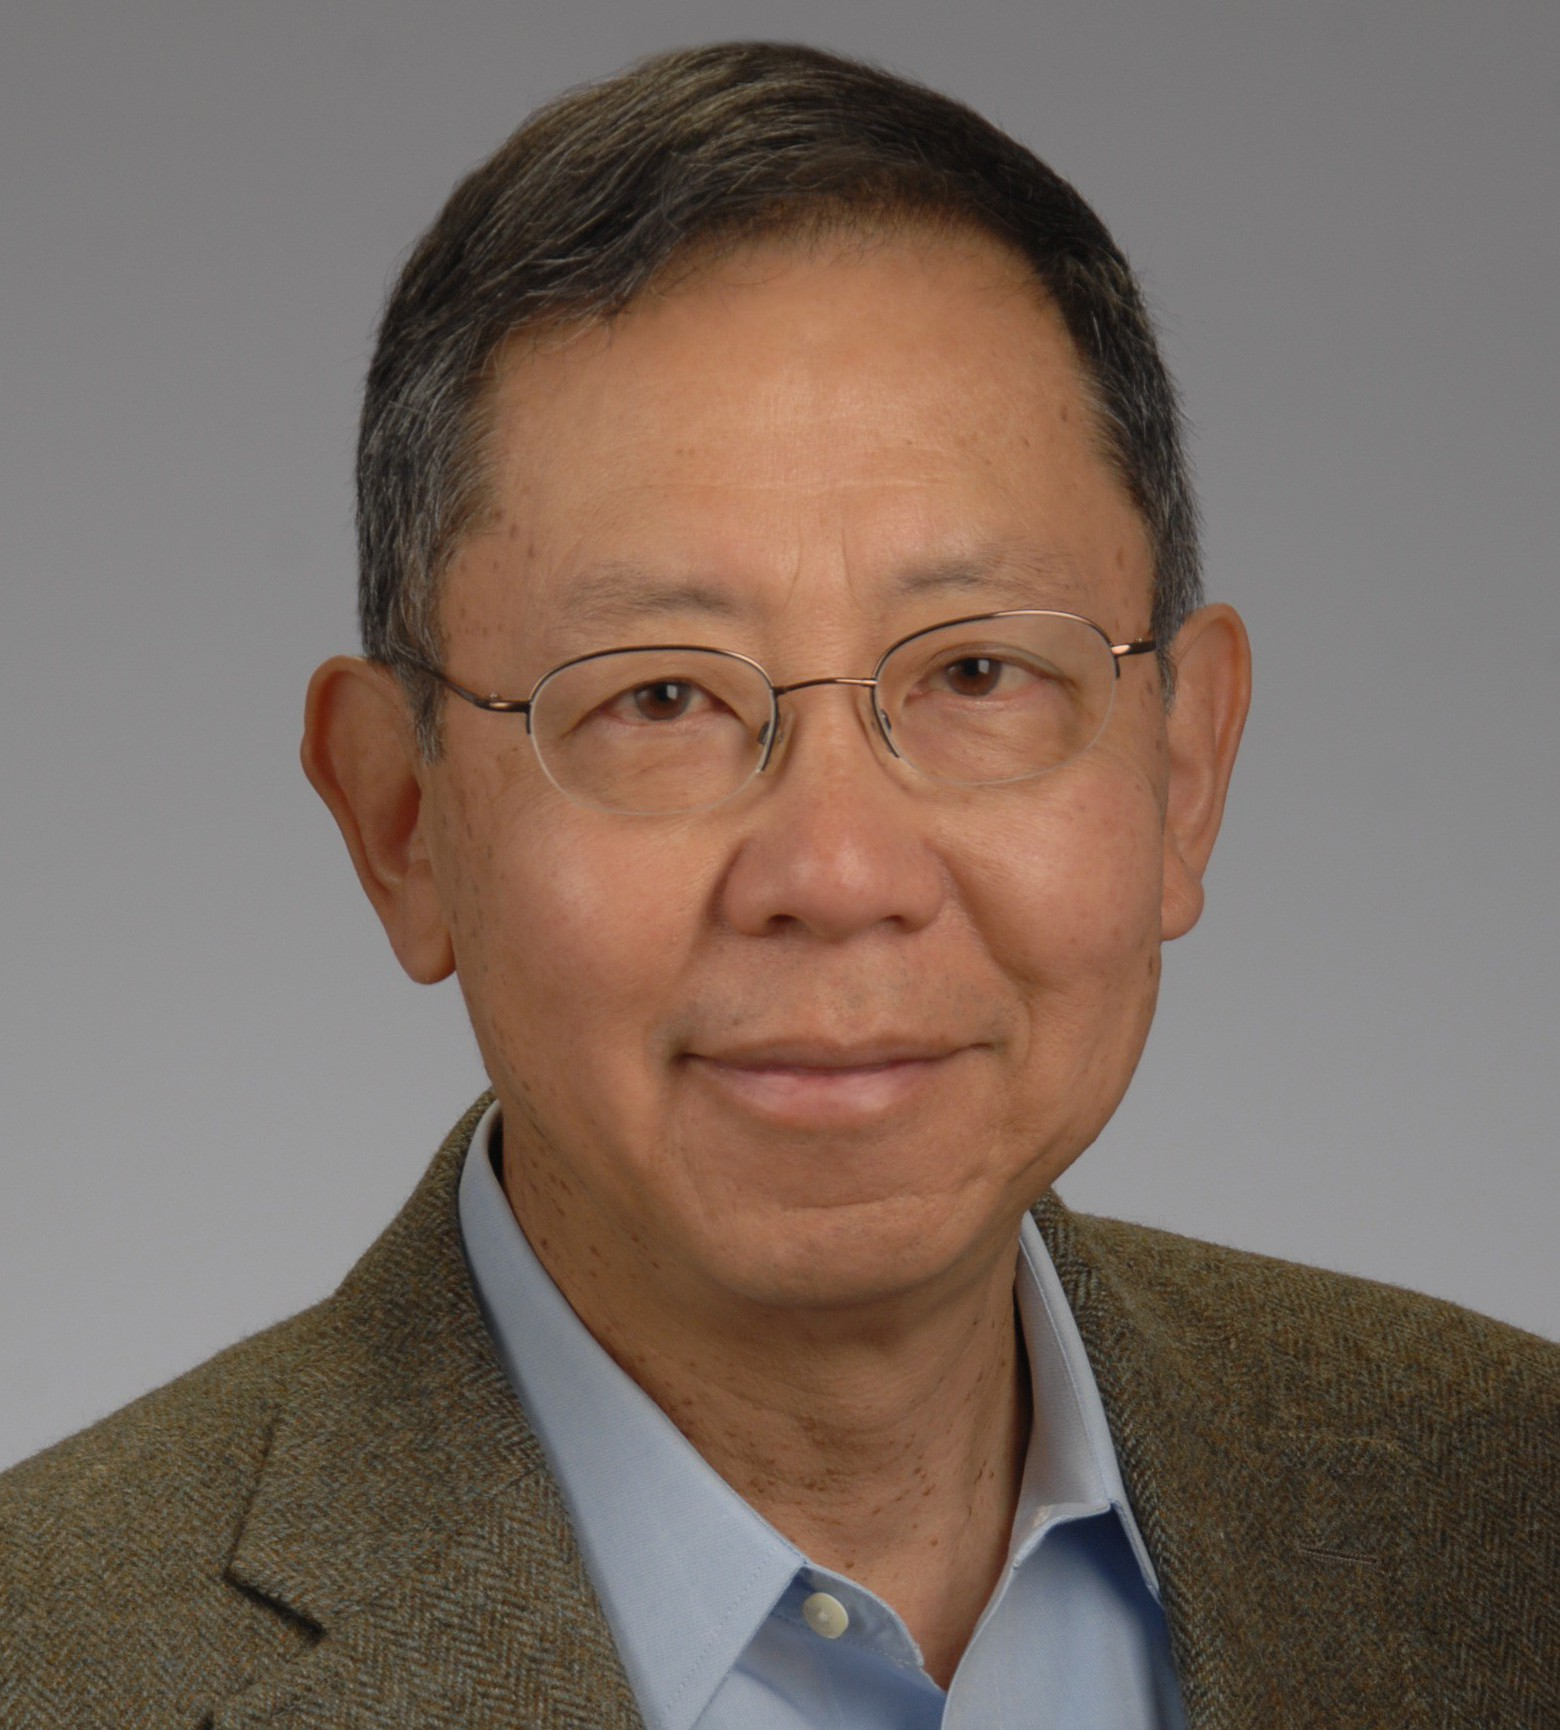 Dr. Richard Nakamura, director of NIH's Center for Scientific Review